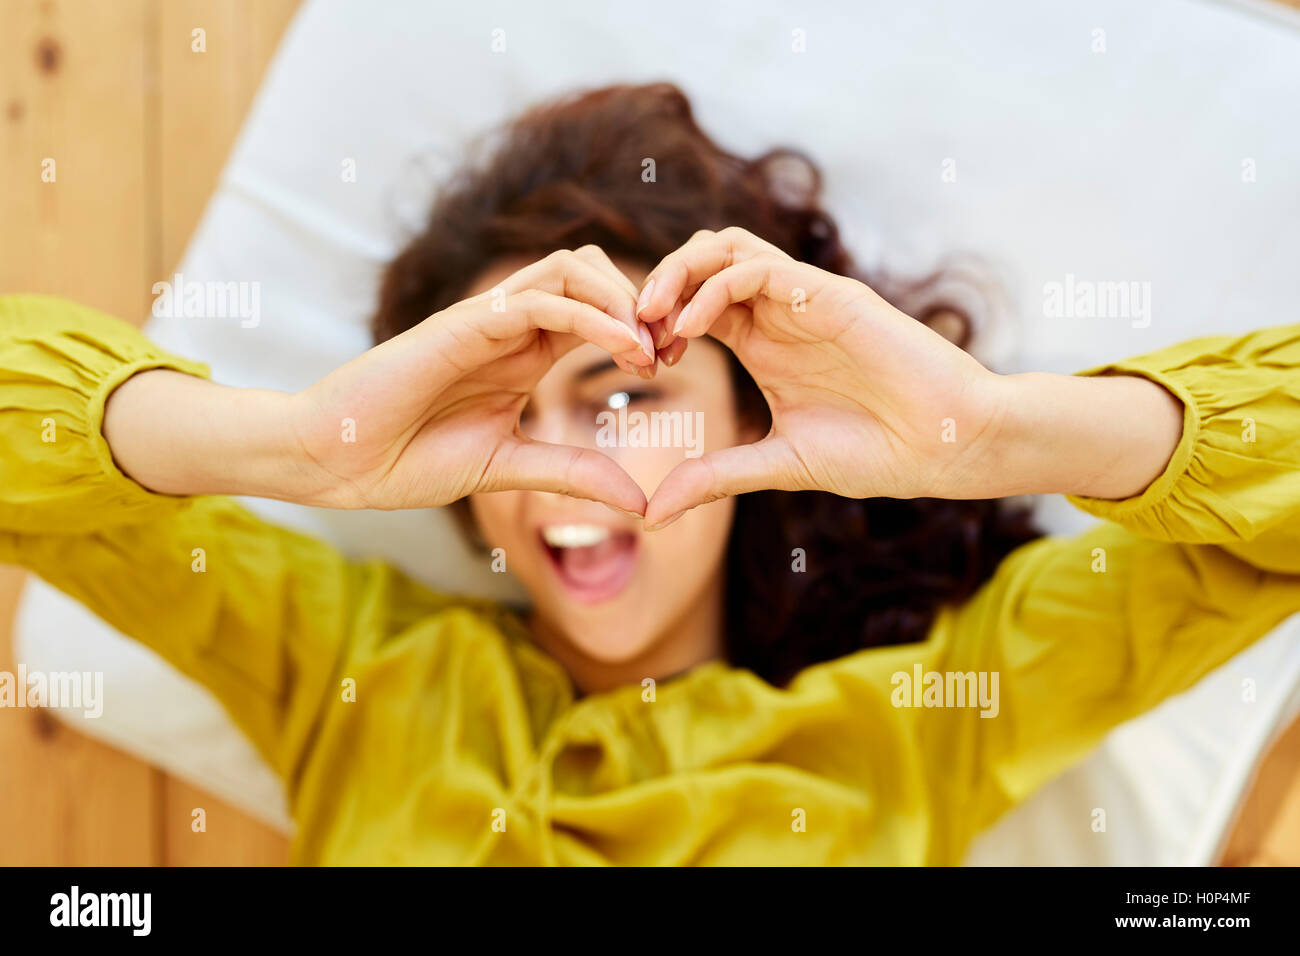 Girl making heart shape with hands - Stock Image